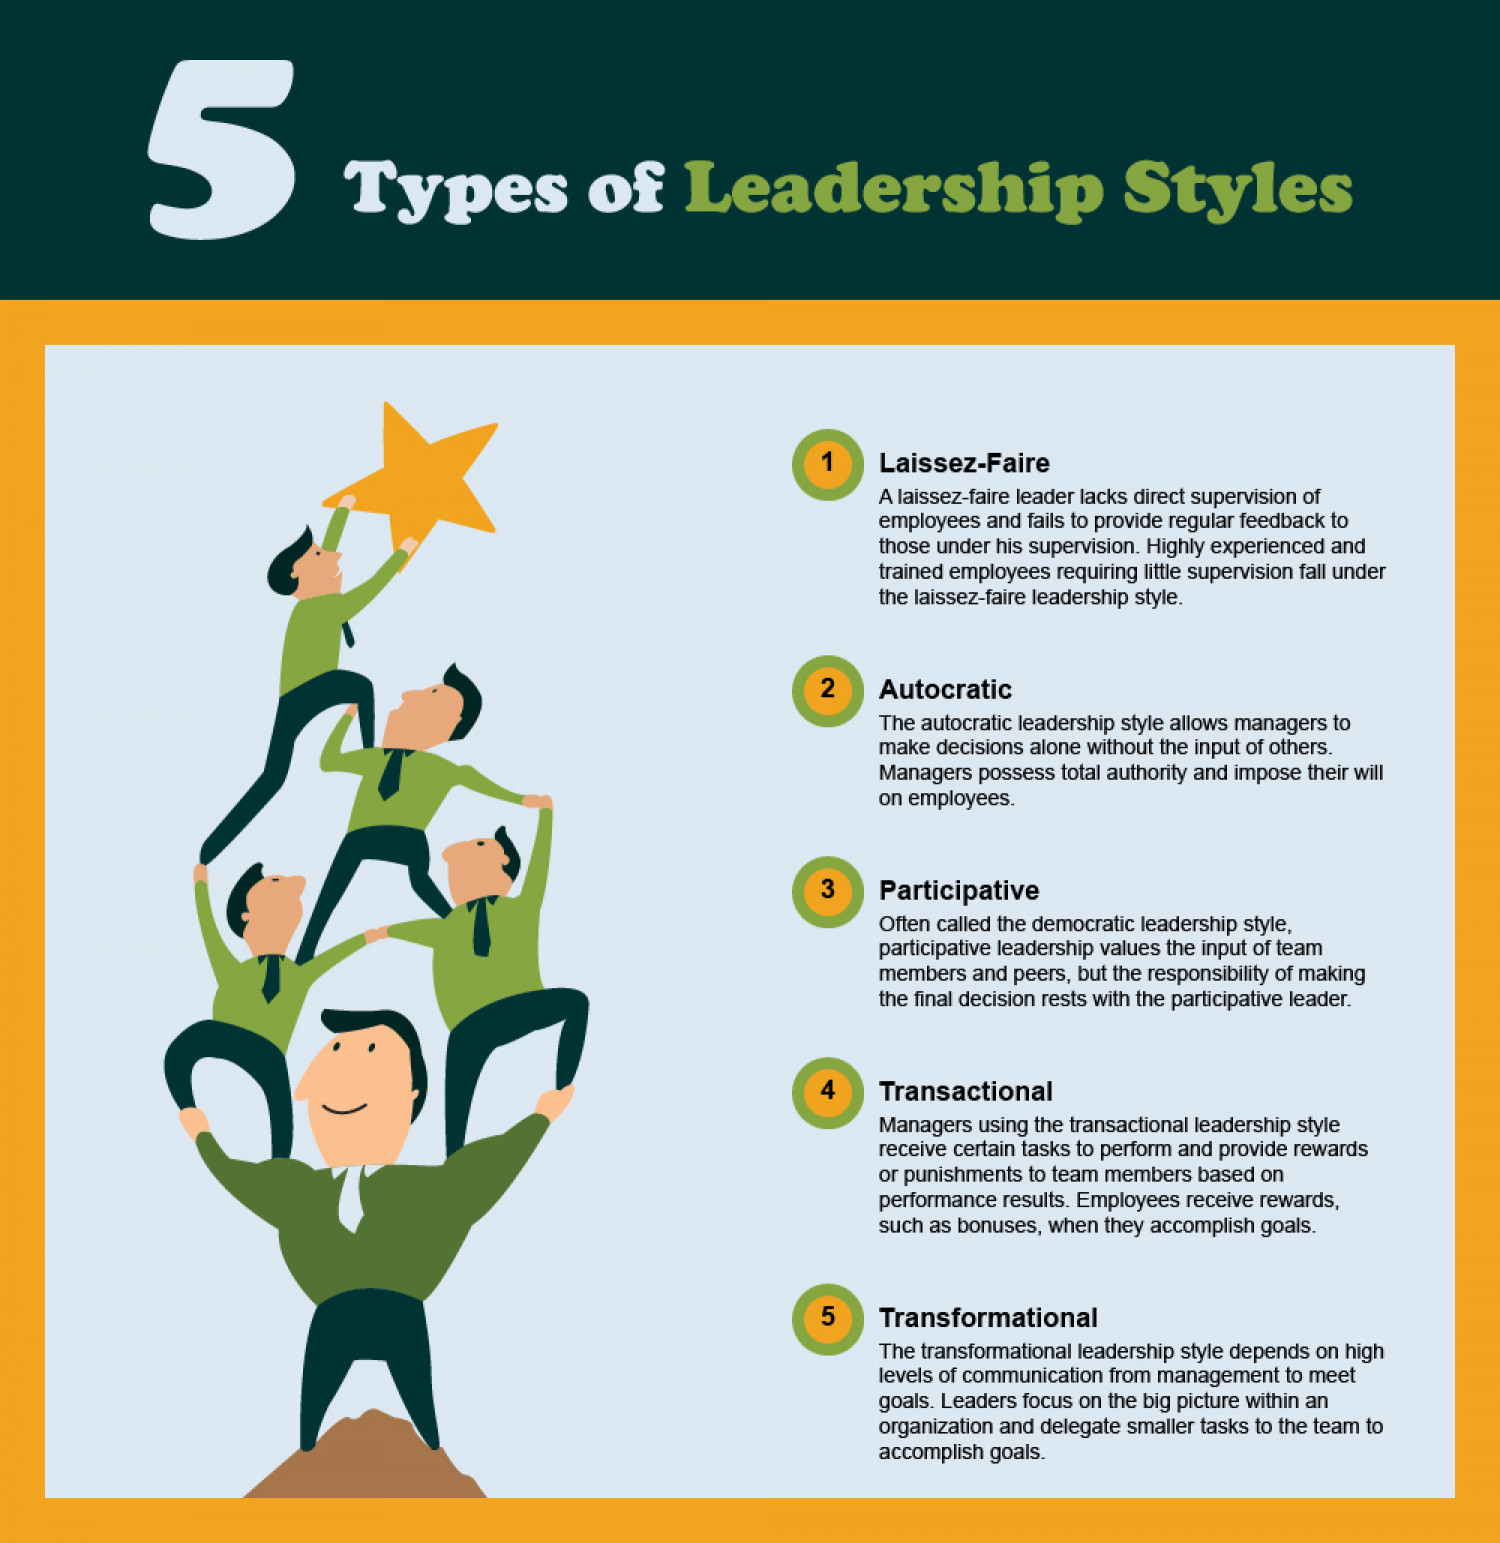 Types of Leadership Styles- An Essential Guide Infographic